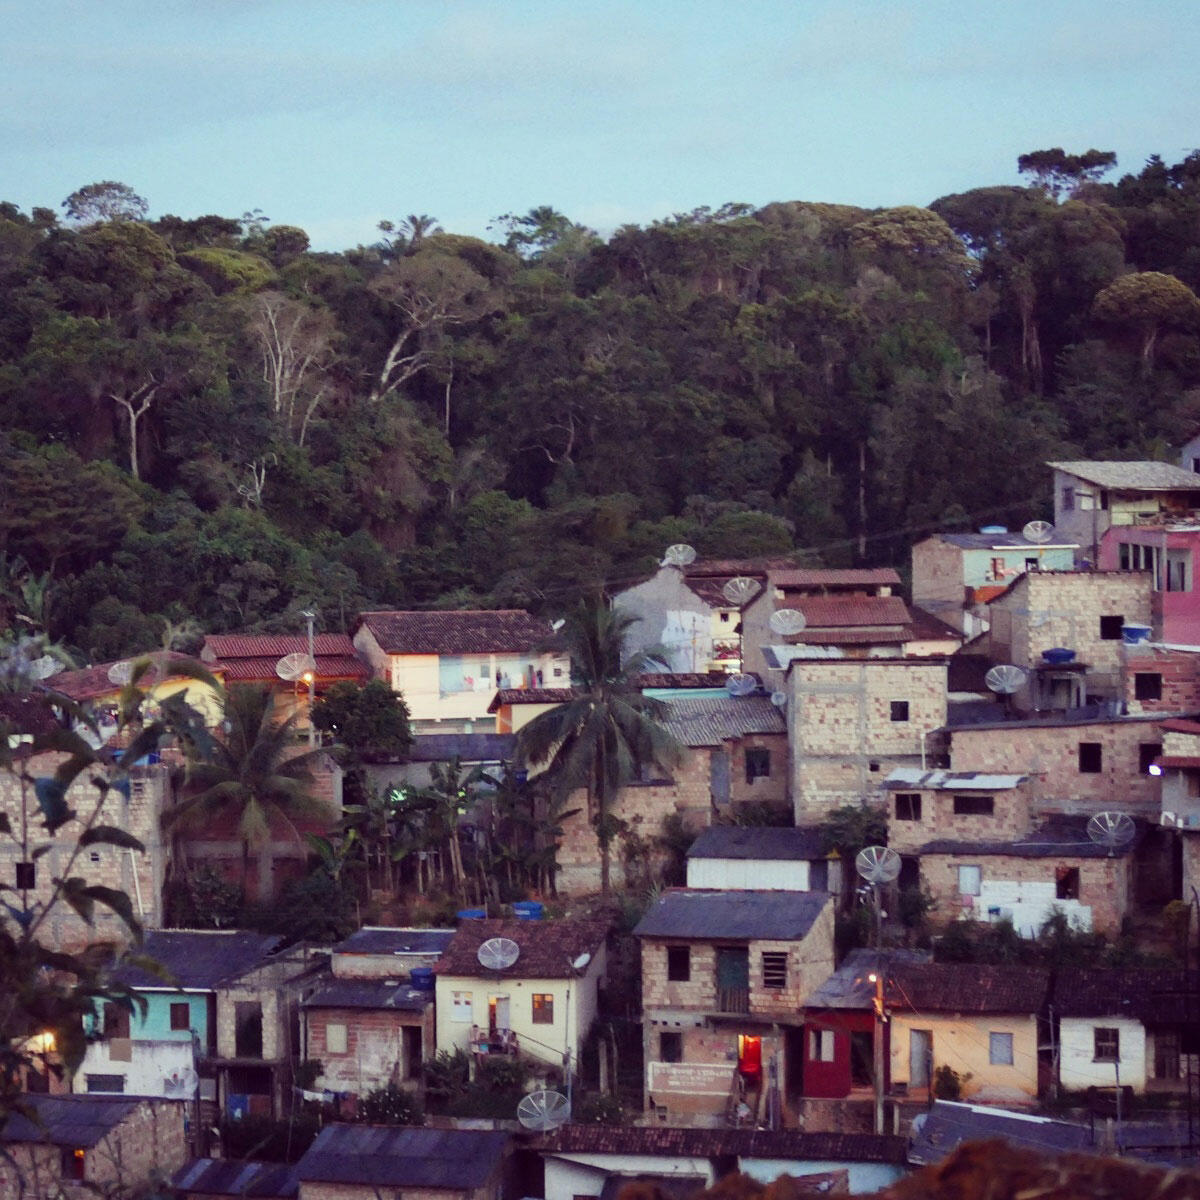 A view of one of the neighborhoods of Itacare, Brazil. Noah Strycker